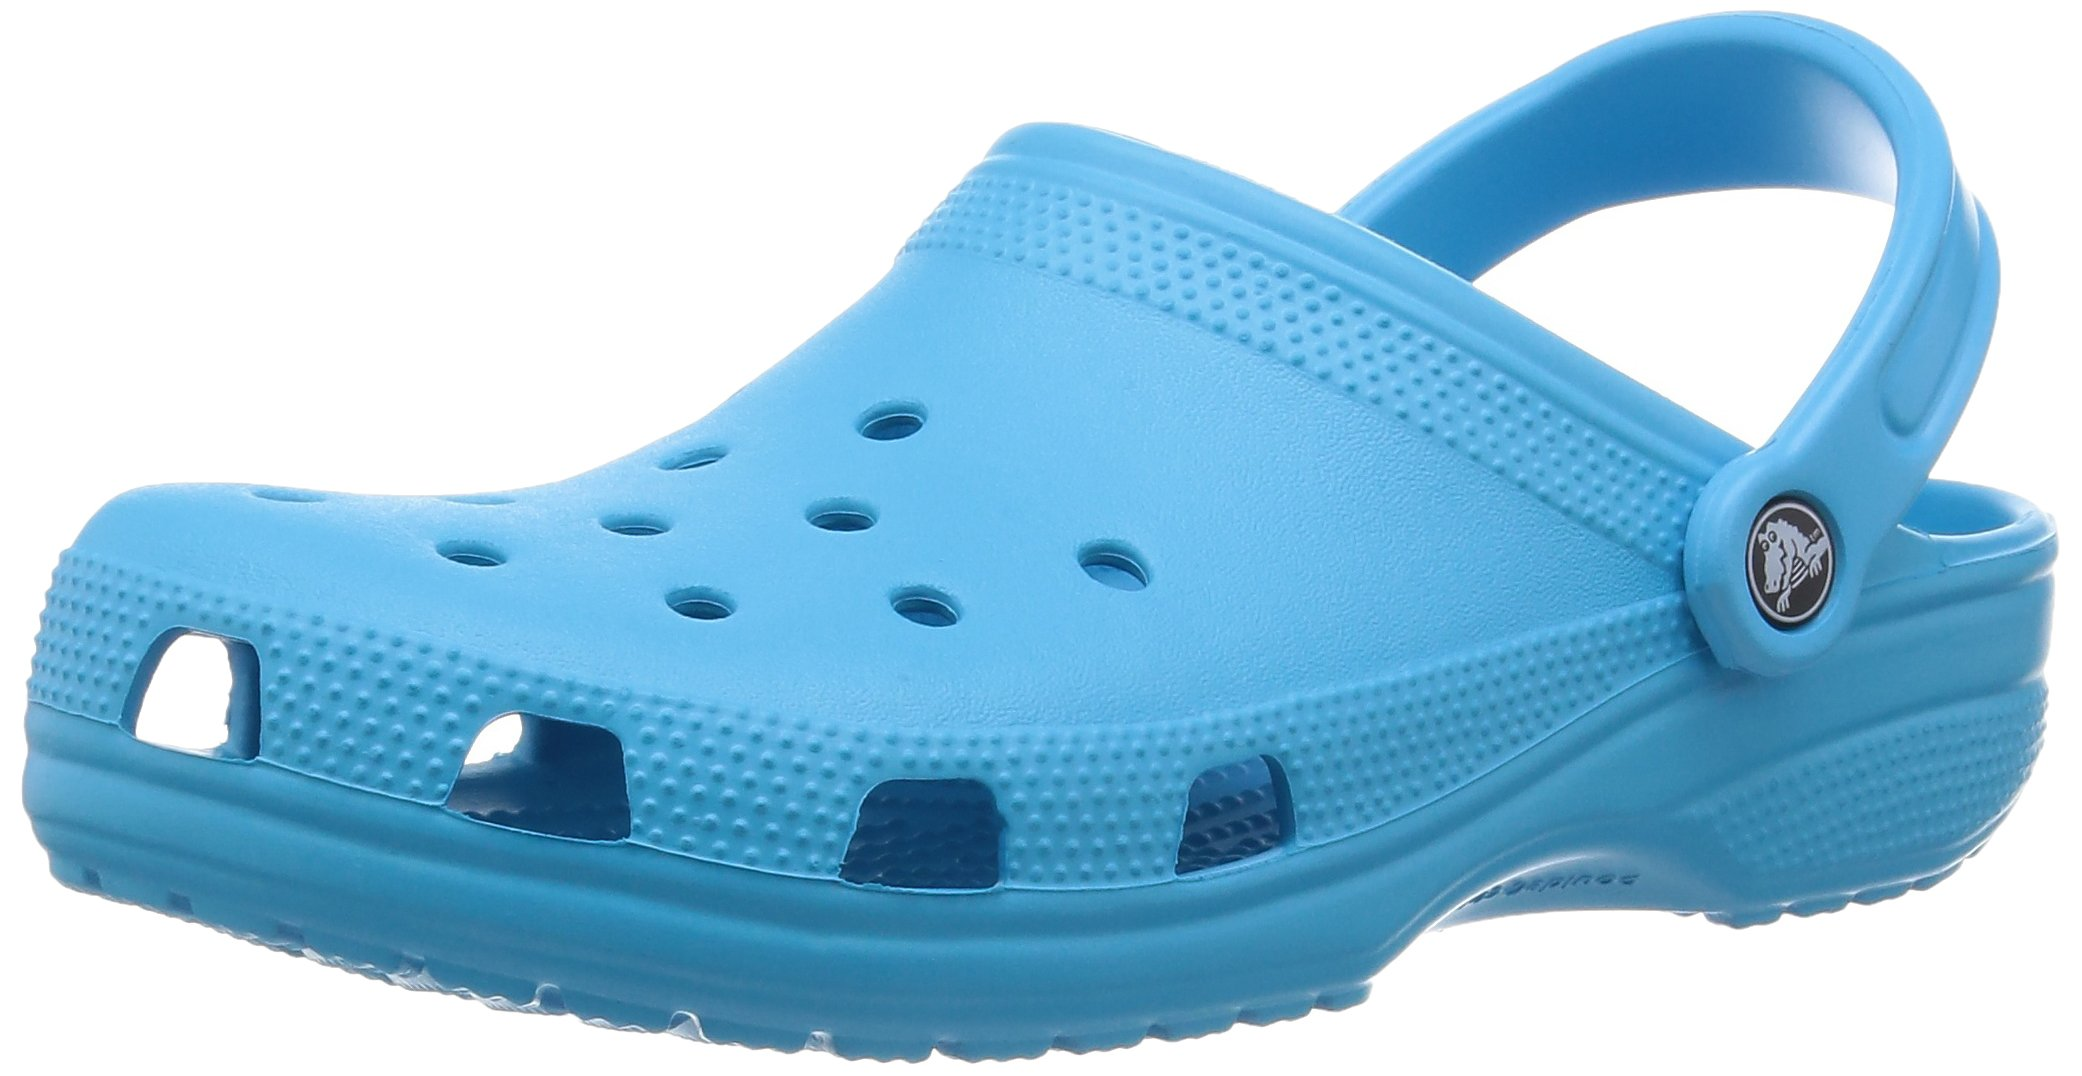 crocs Unisex Classic Clog,Electric Blue,6 M US Men's / 8 M US Women's